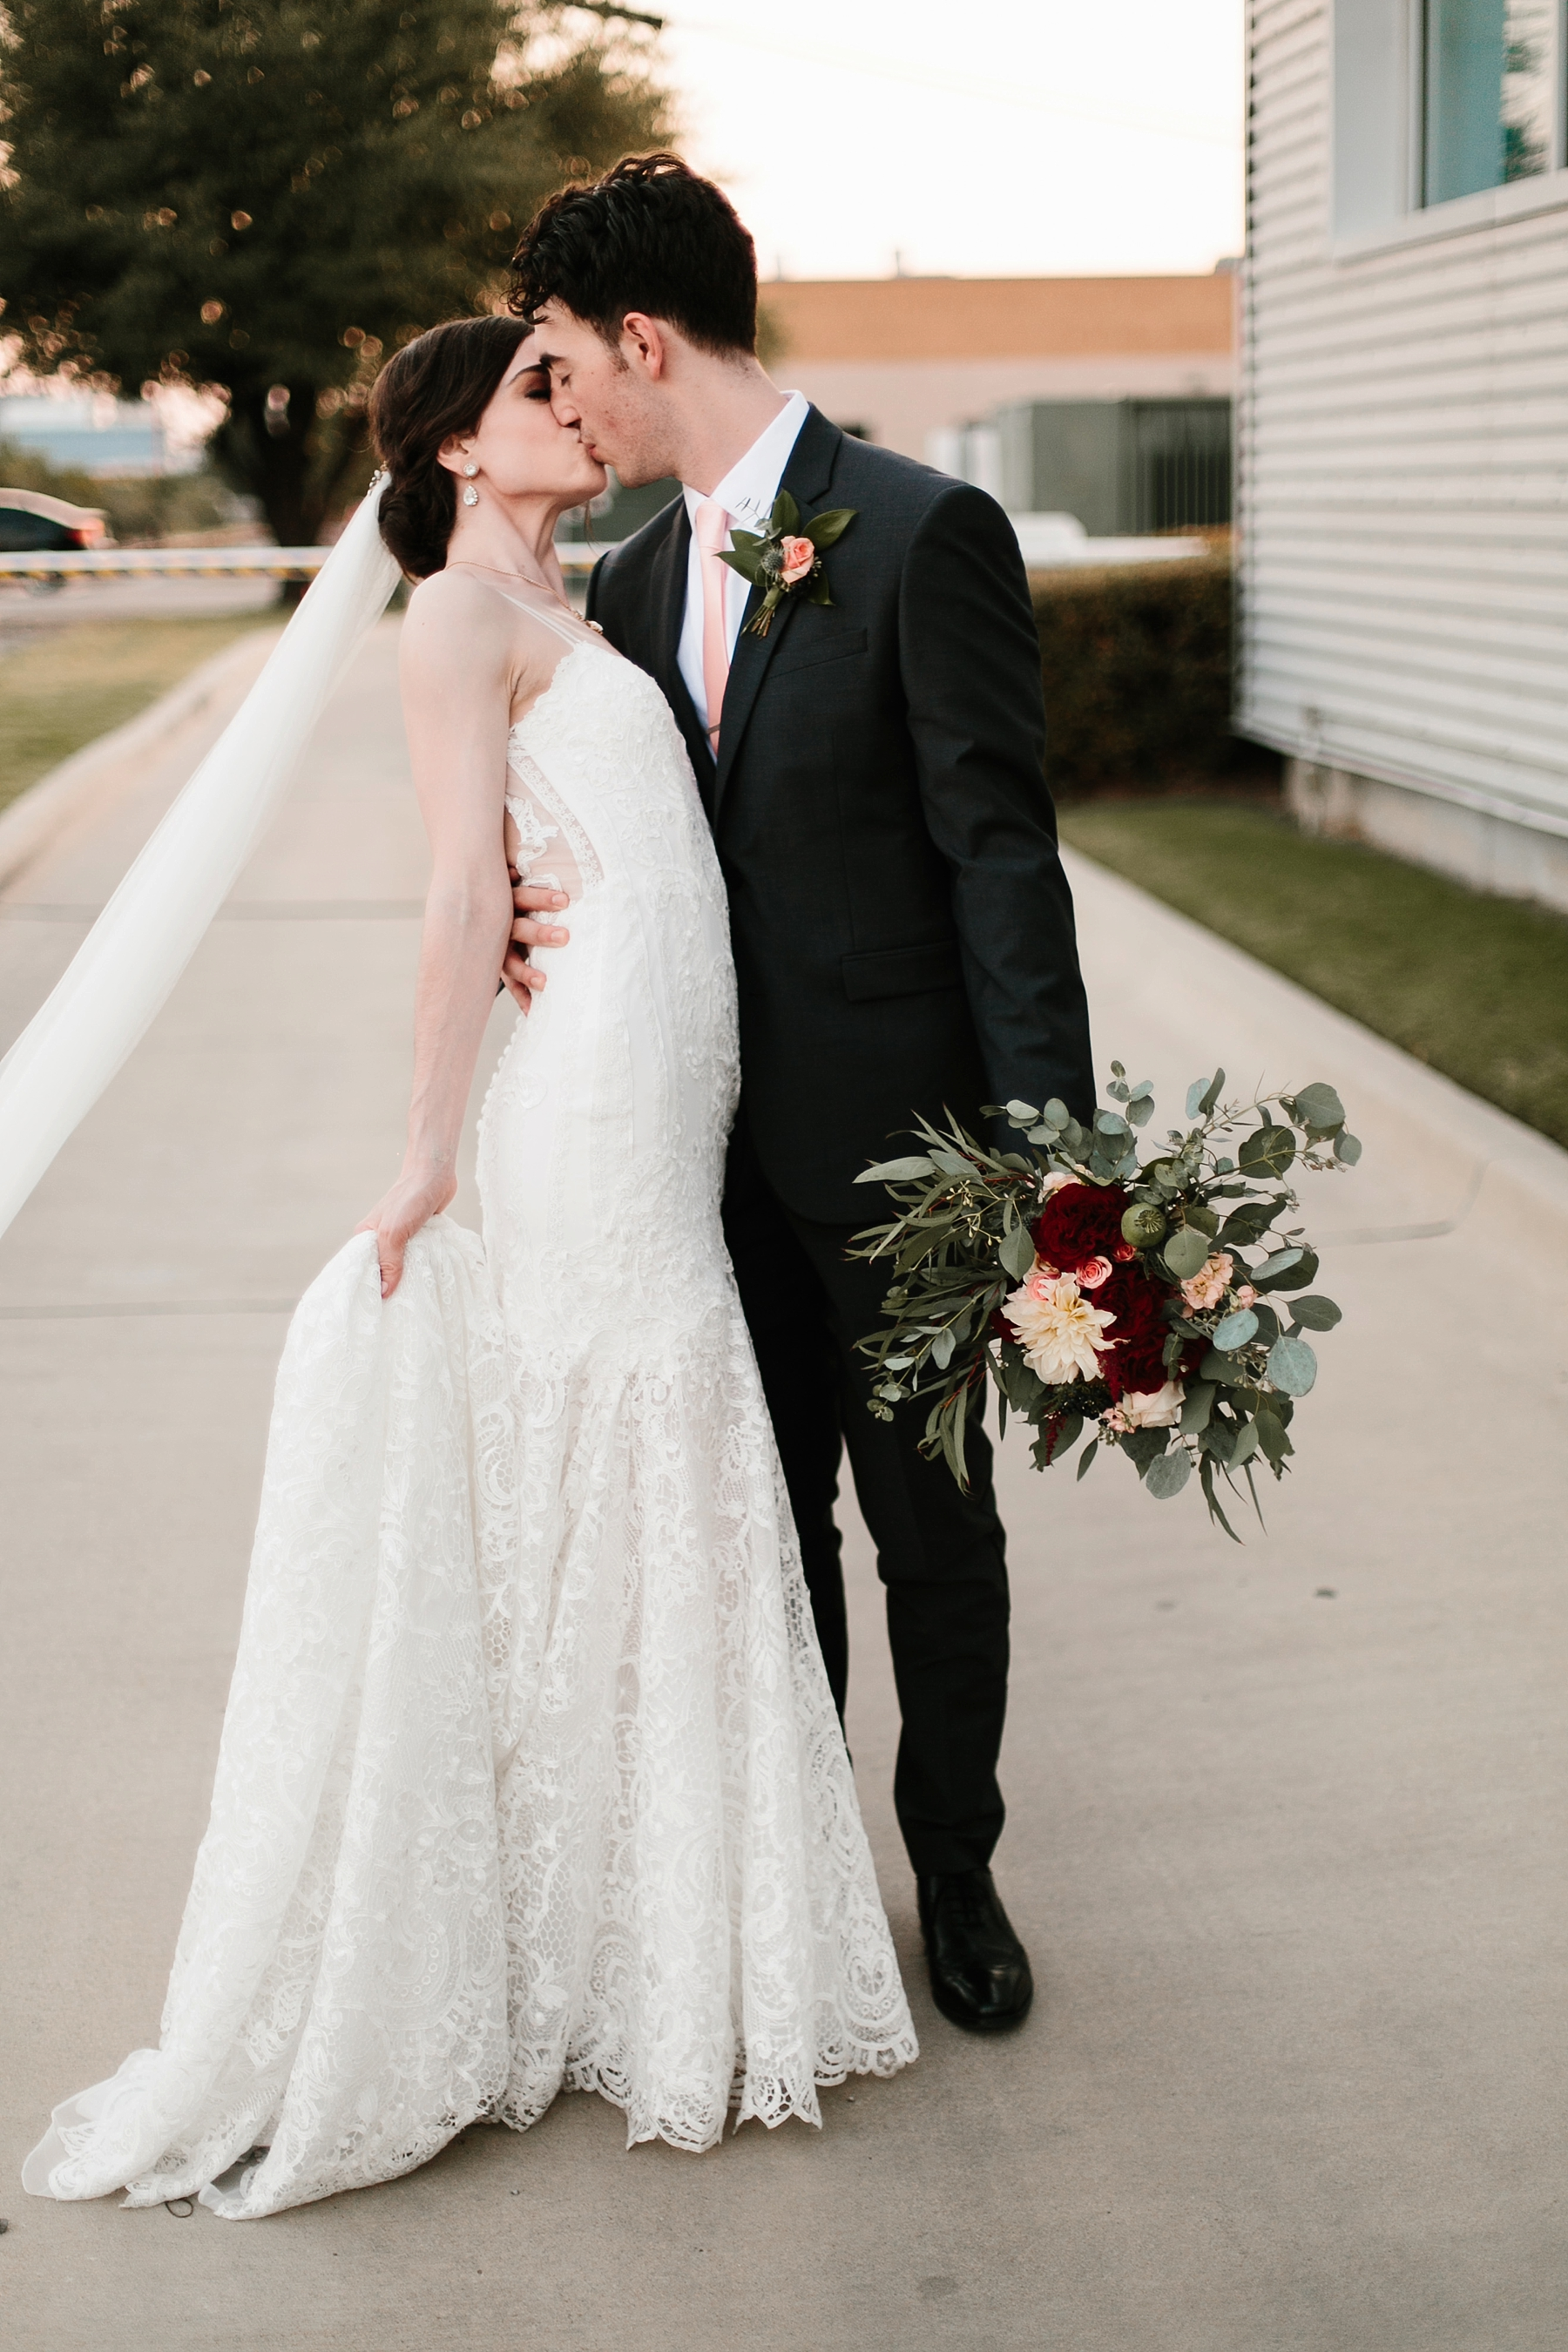 Emily + Caleb _ an elegant, intentional, industrial style wedding with navy + gold accents at 6500 in Dallas, TX by North Texas Wedding Photographer Rachel Meagan Photography _ 120